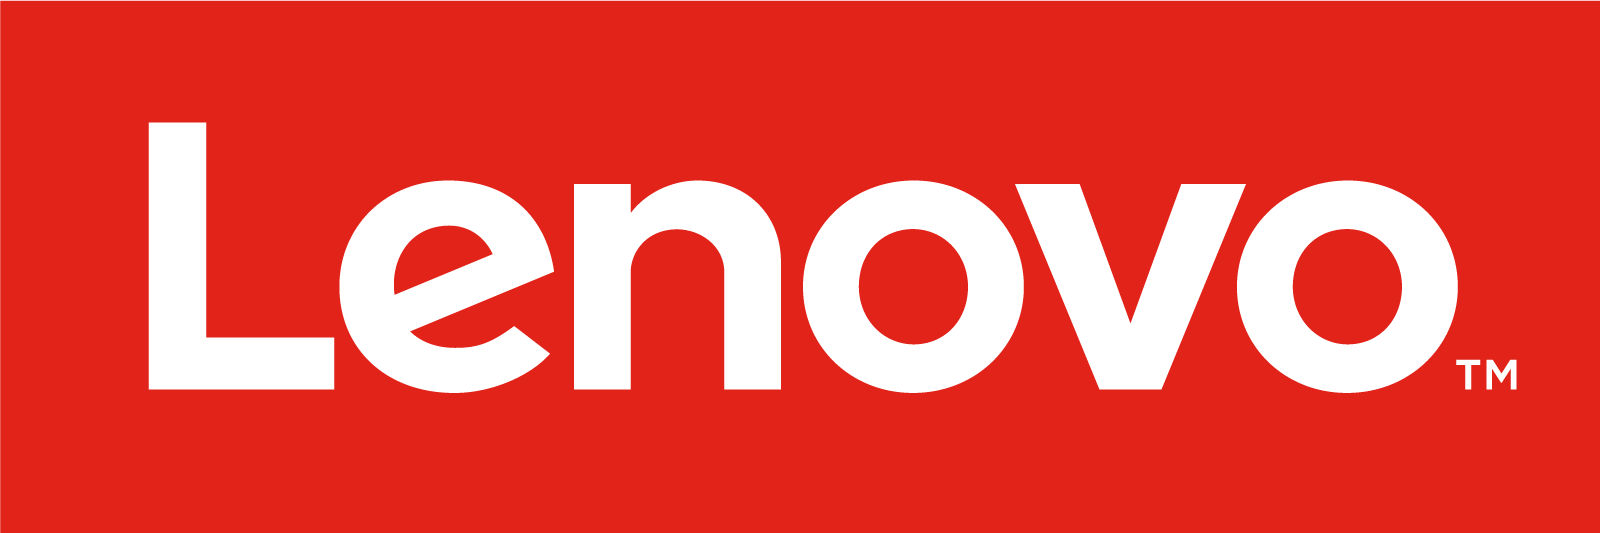 LenovoLogo POS Red